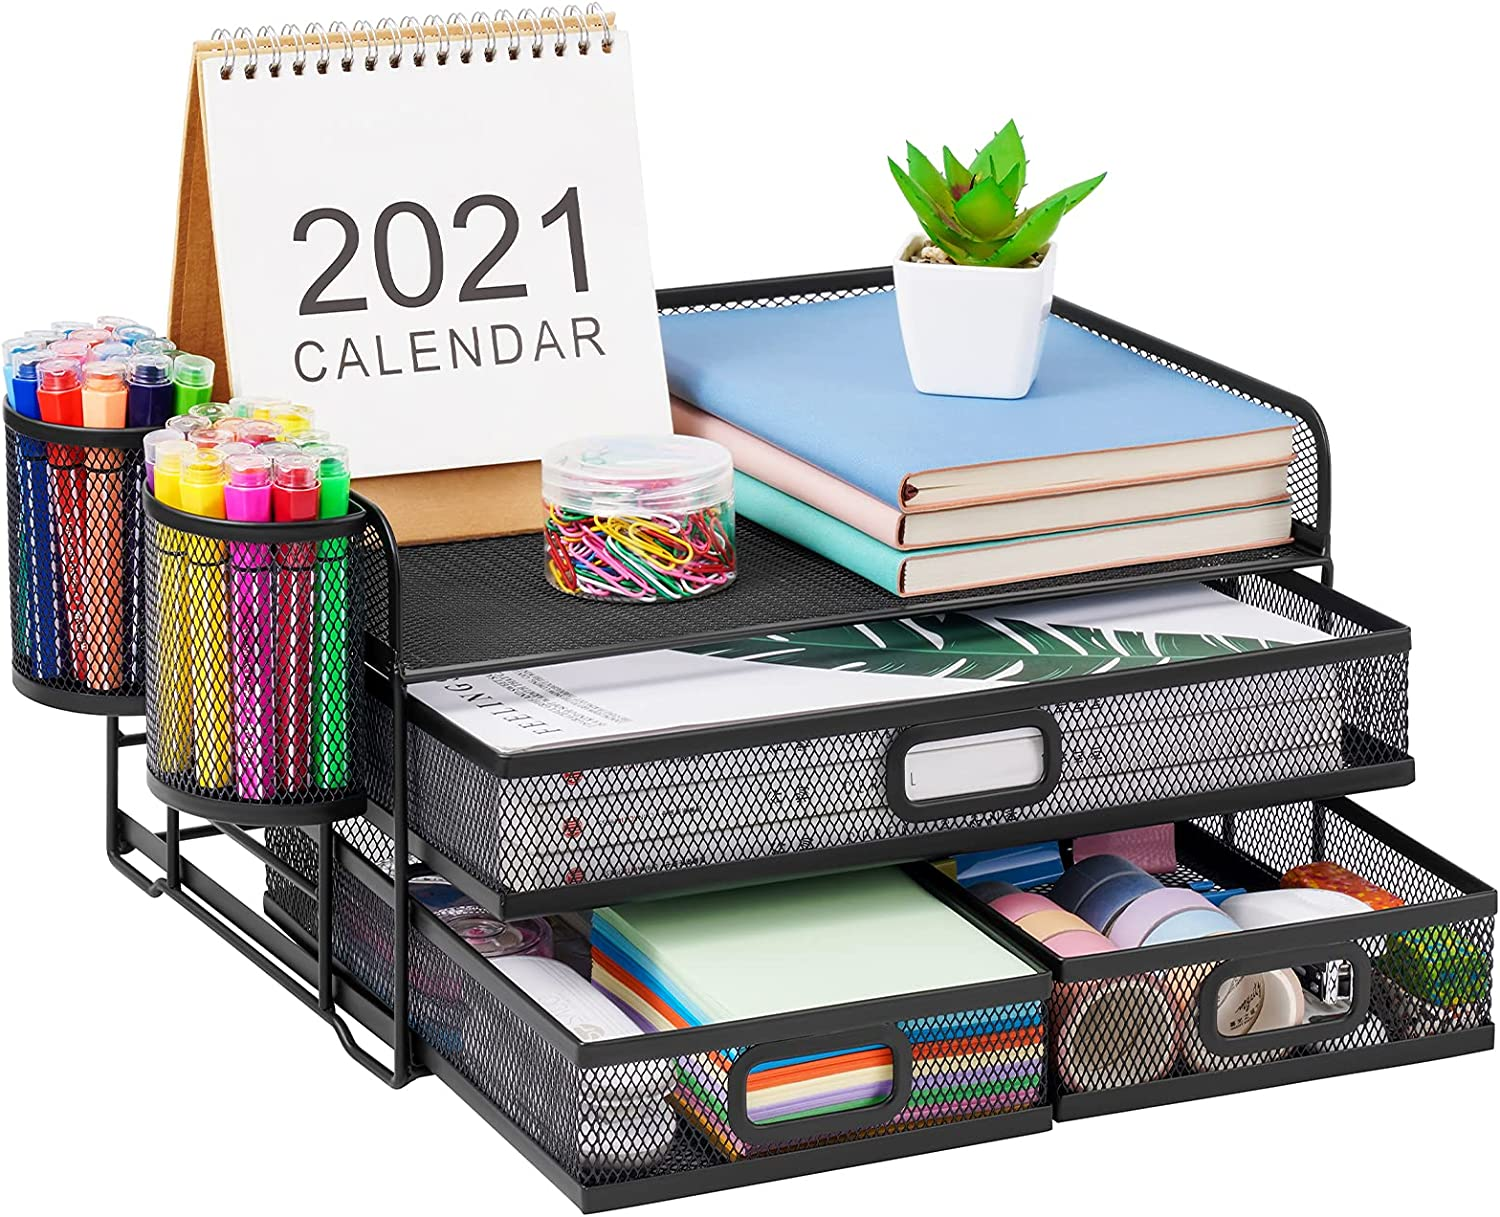 Marbrasse Limited time sale 3 Tier Mesh Desk Organizer with Multi-Function Max 49% OFF Drawer